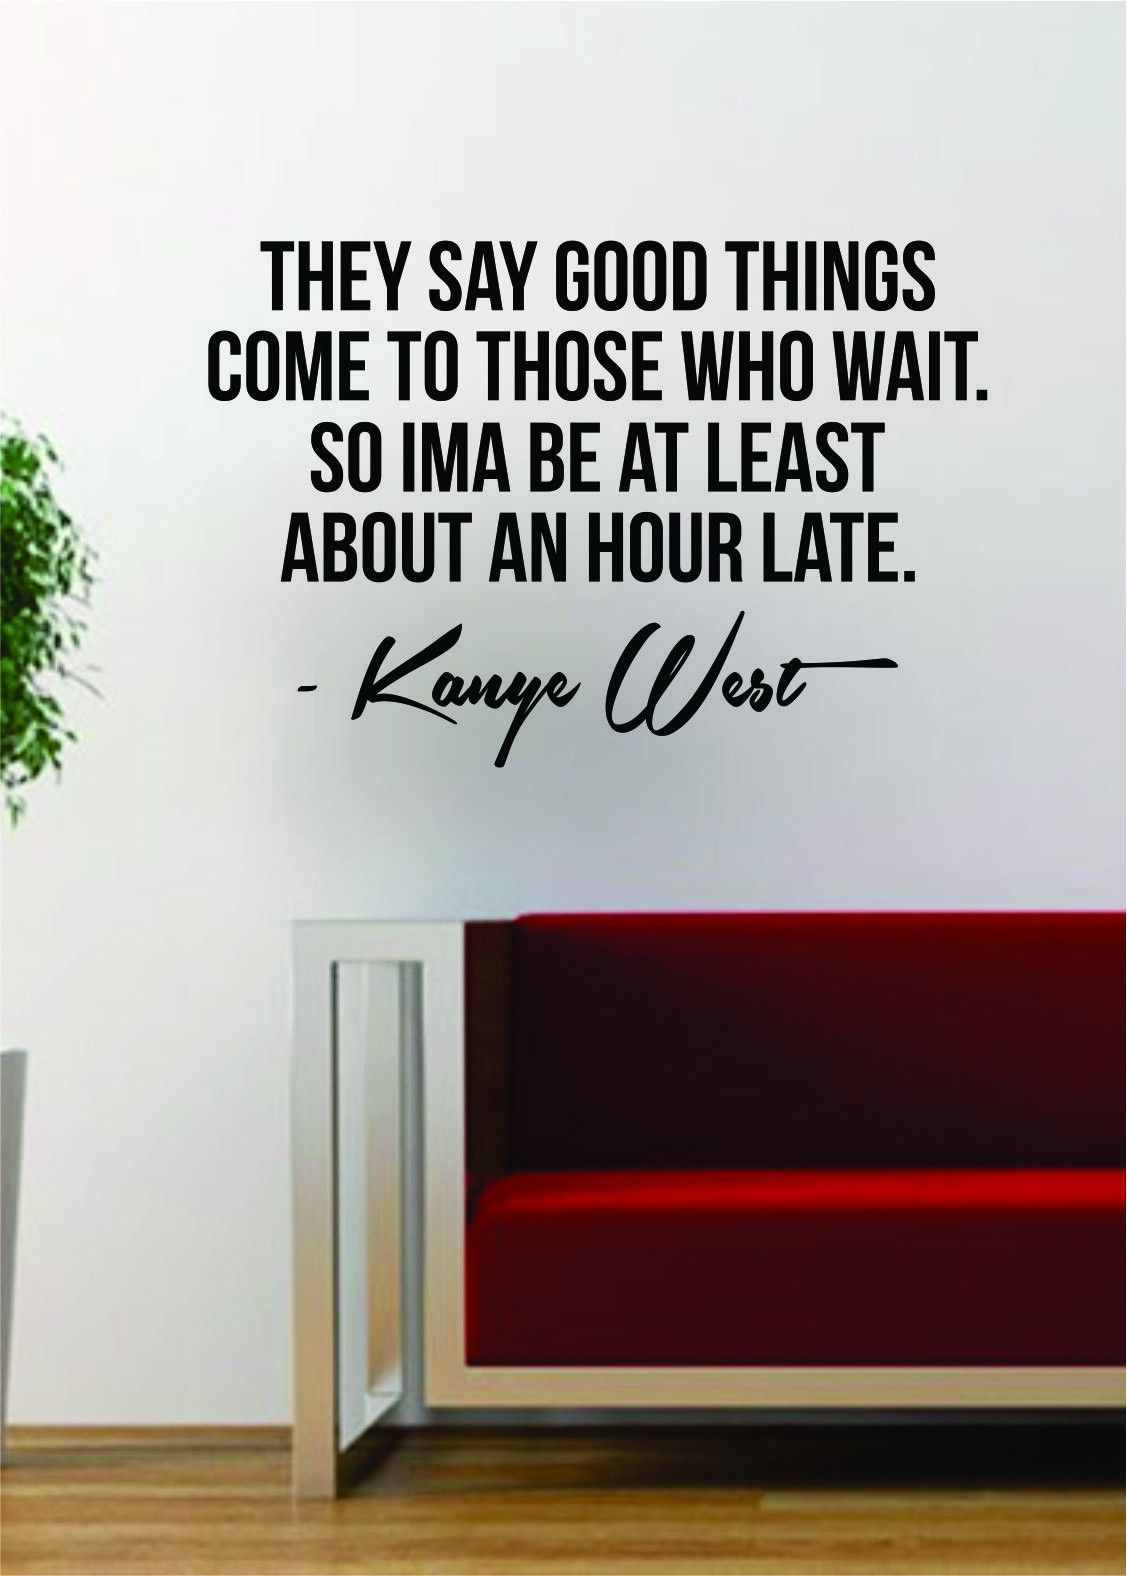 Kanye West Good Things Quote Decal Sticker Wall Vinyl Art